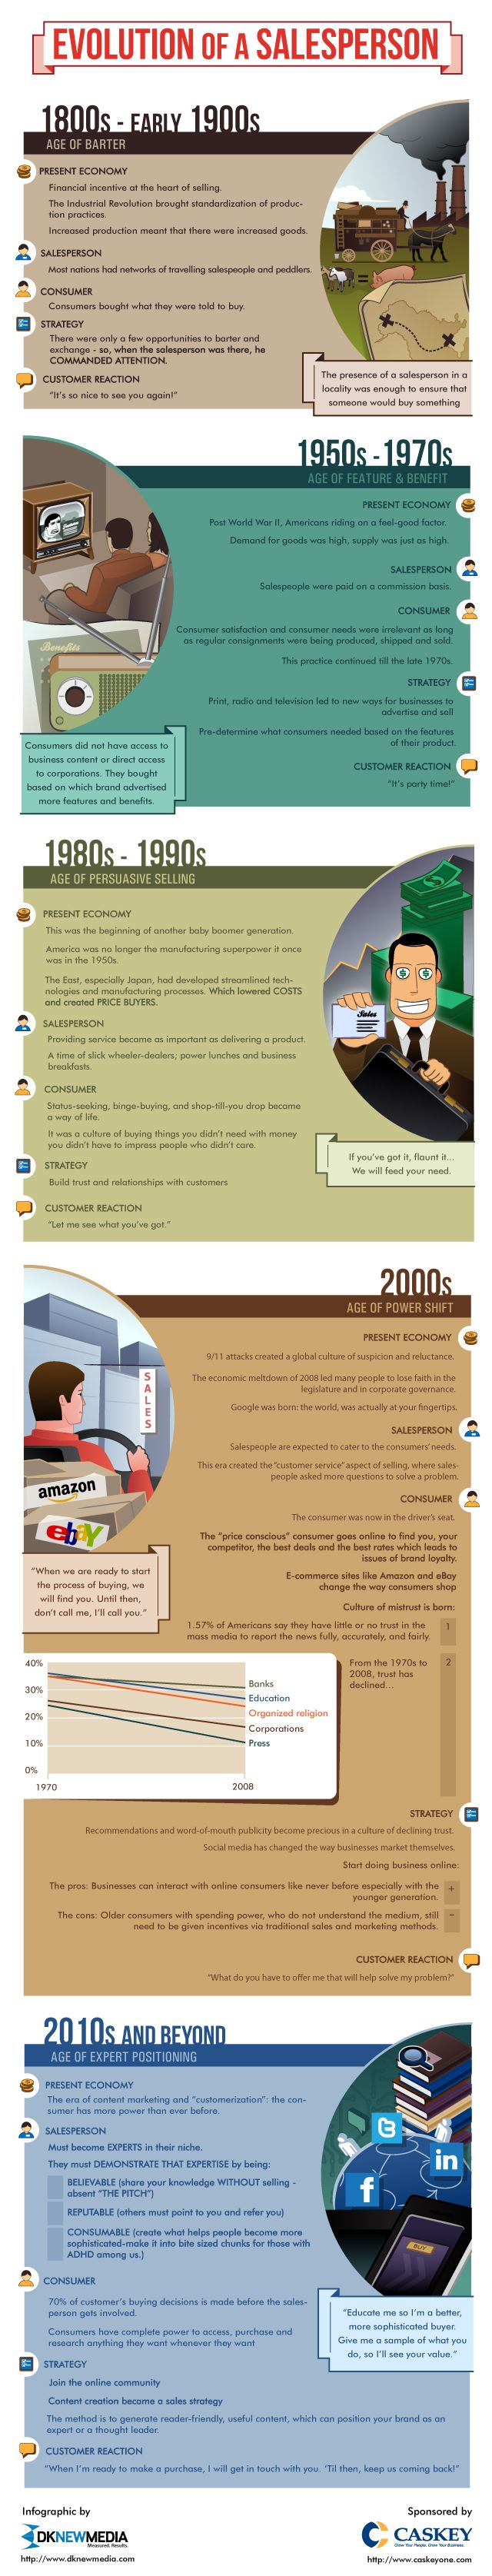 The Evolution of a Salesperson The infographic